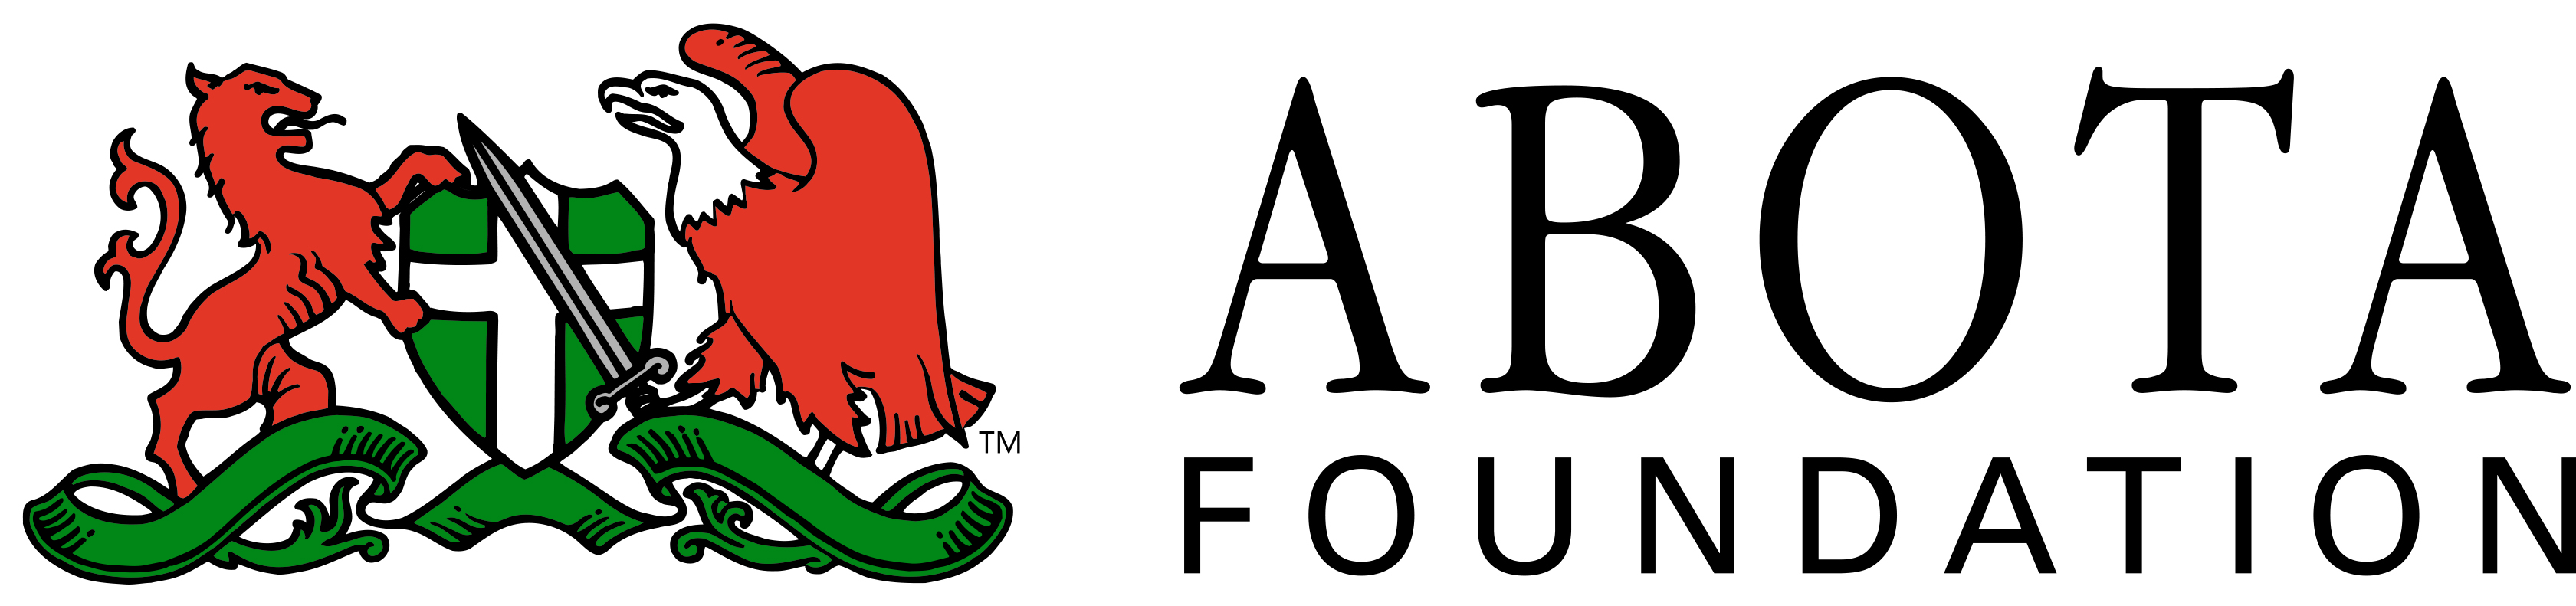 ABOTA Foundation Logo